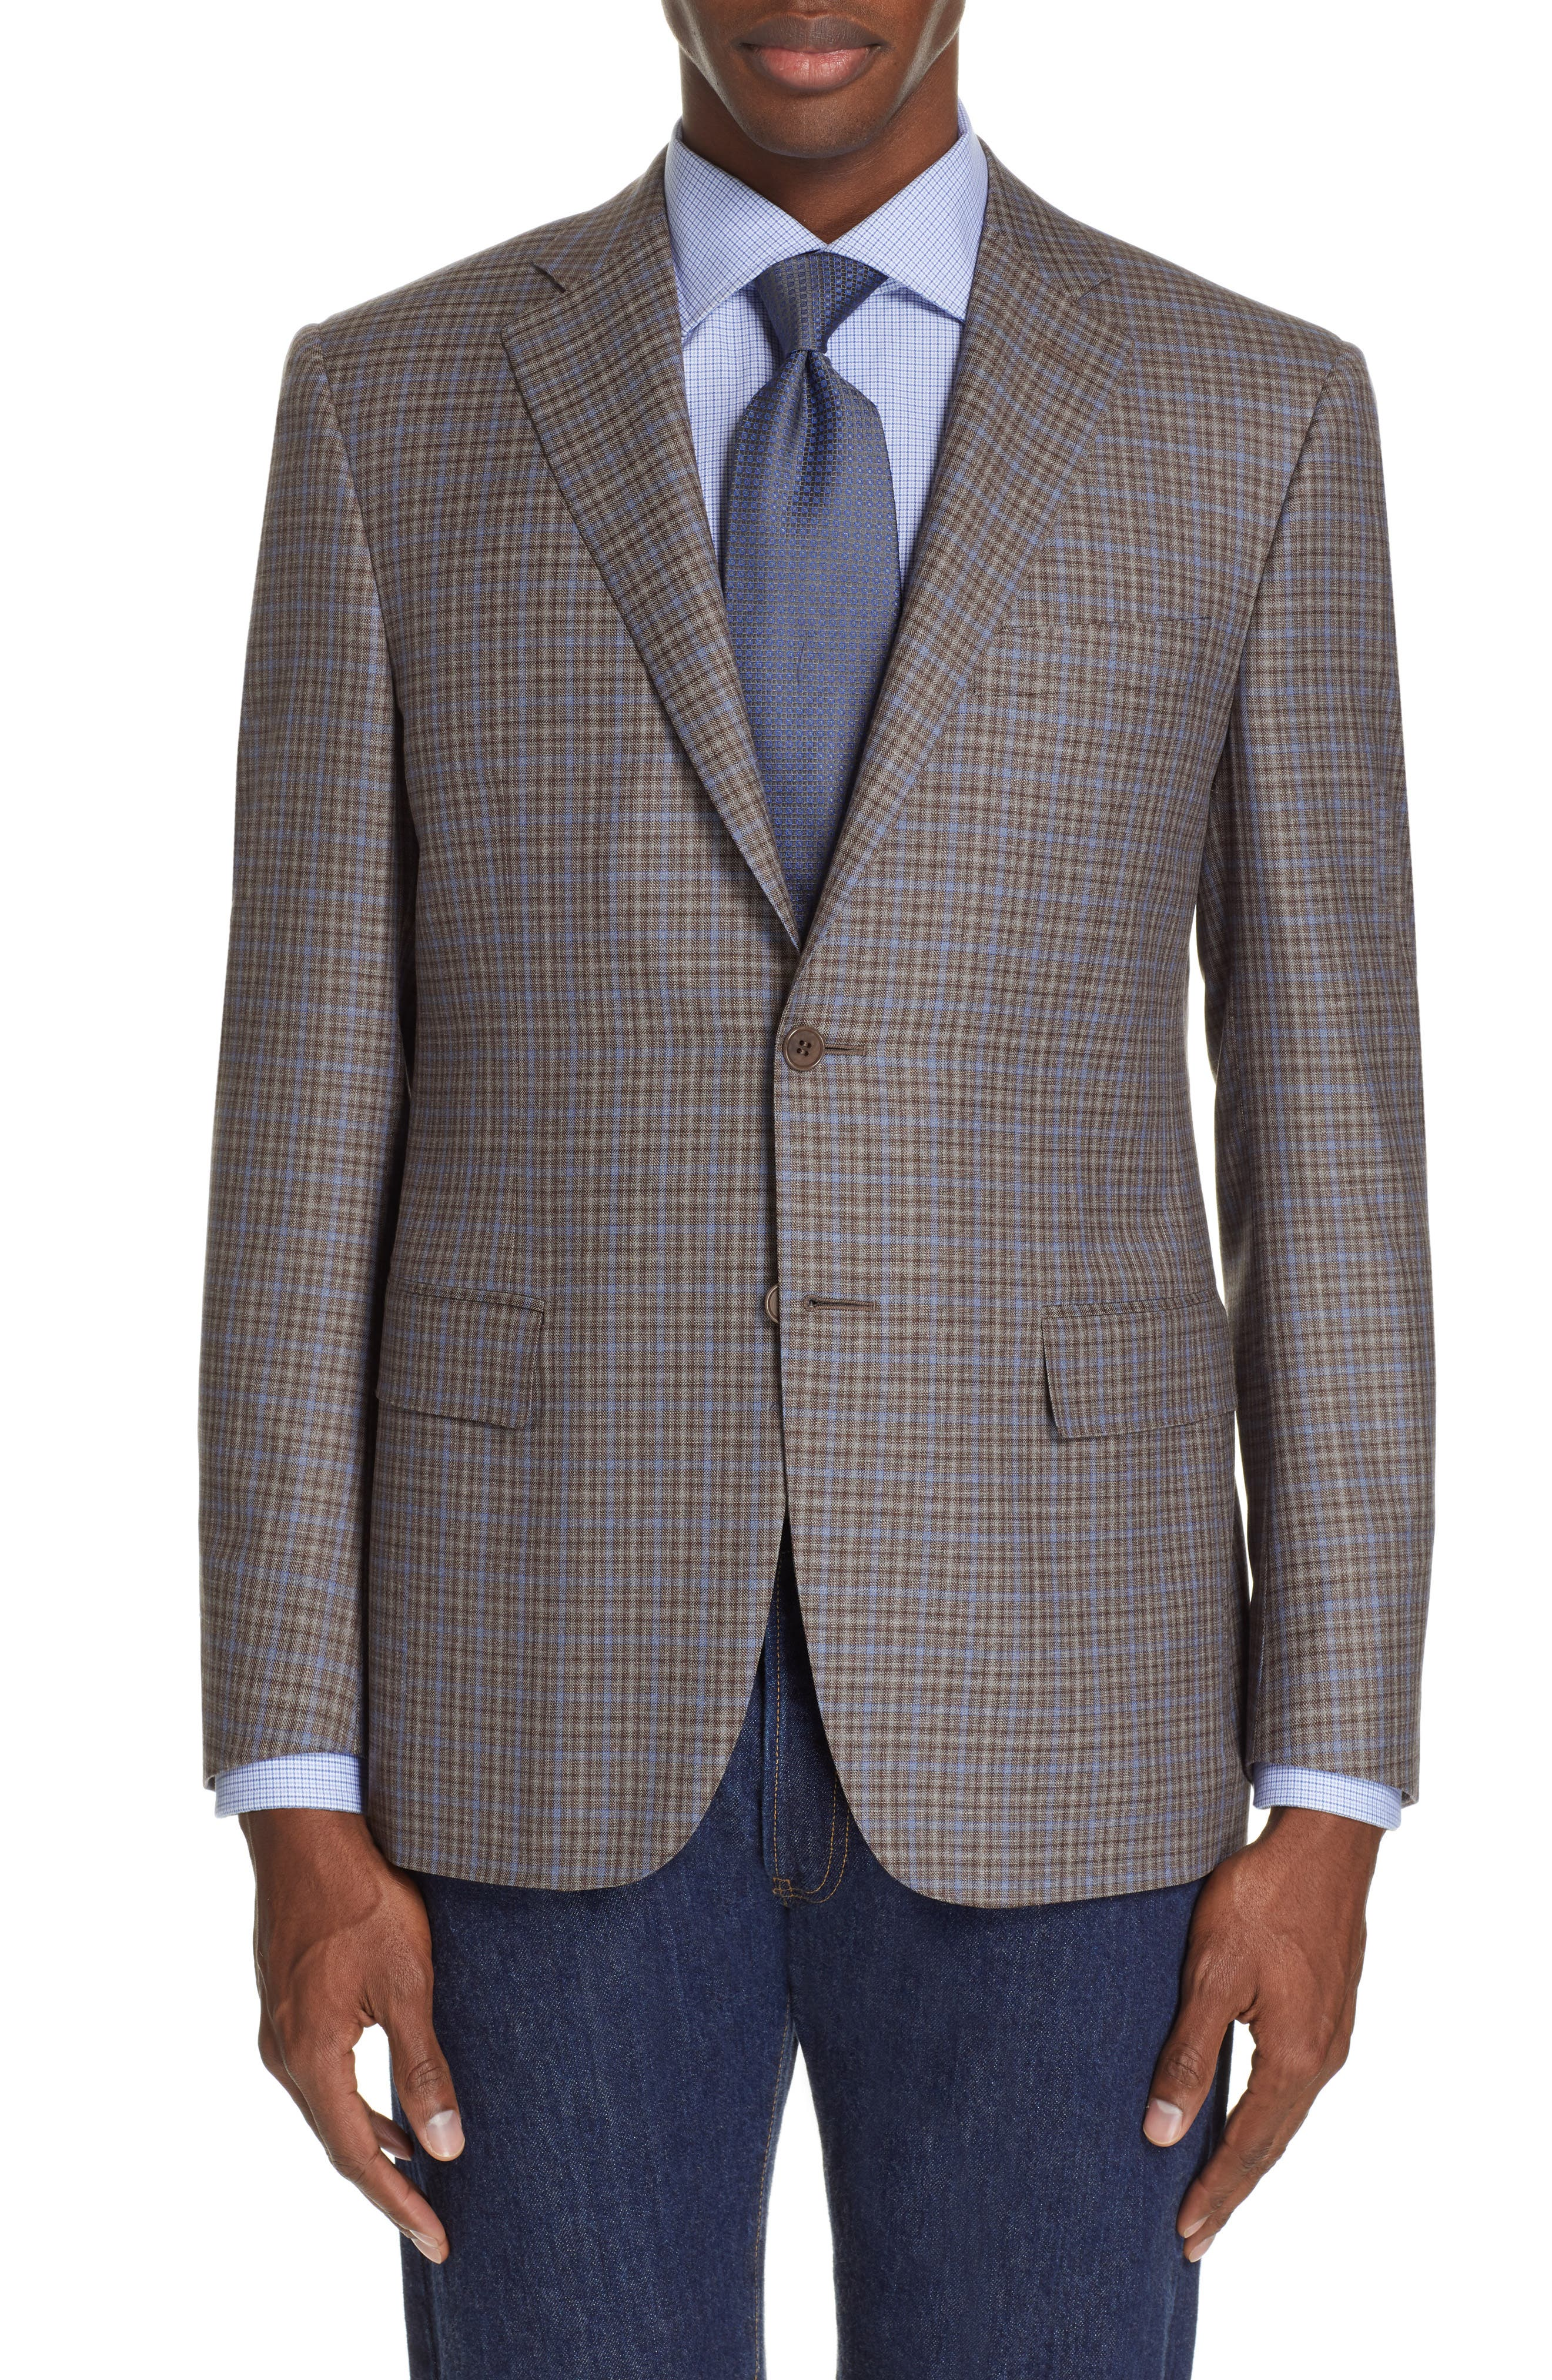 CANALI Sienna Classic Fit Plaid Wool Sport Coat, Main, color, BROWN